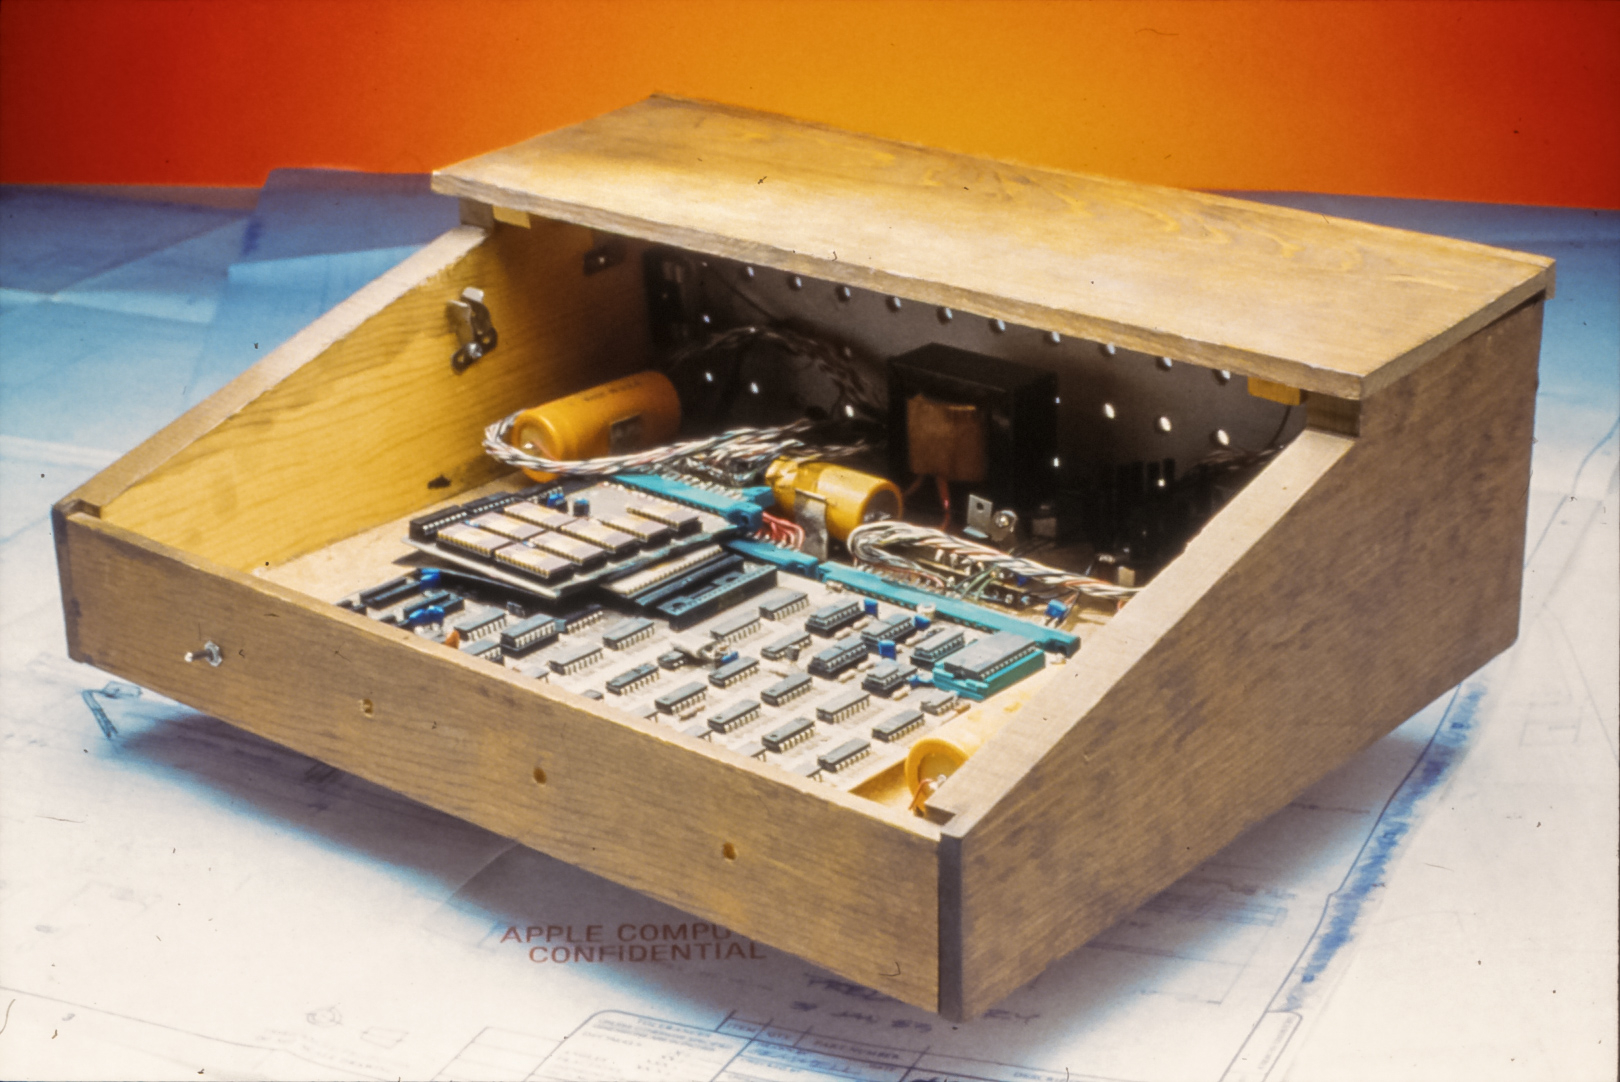 Fully assembled Apple-1 computer prototype in wooden case